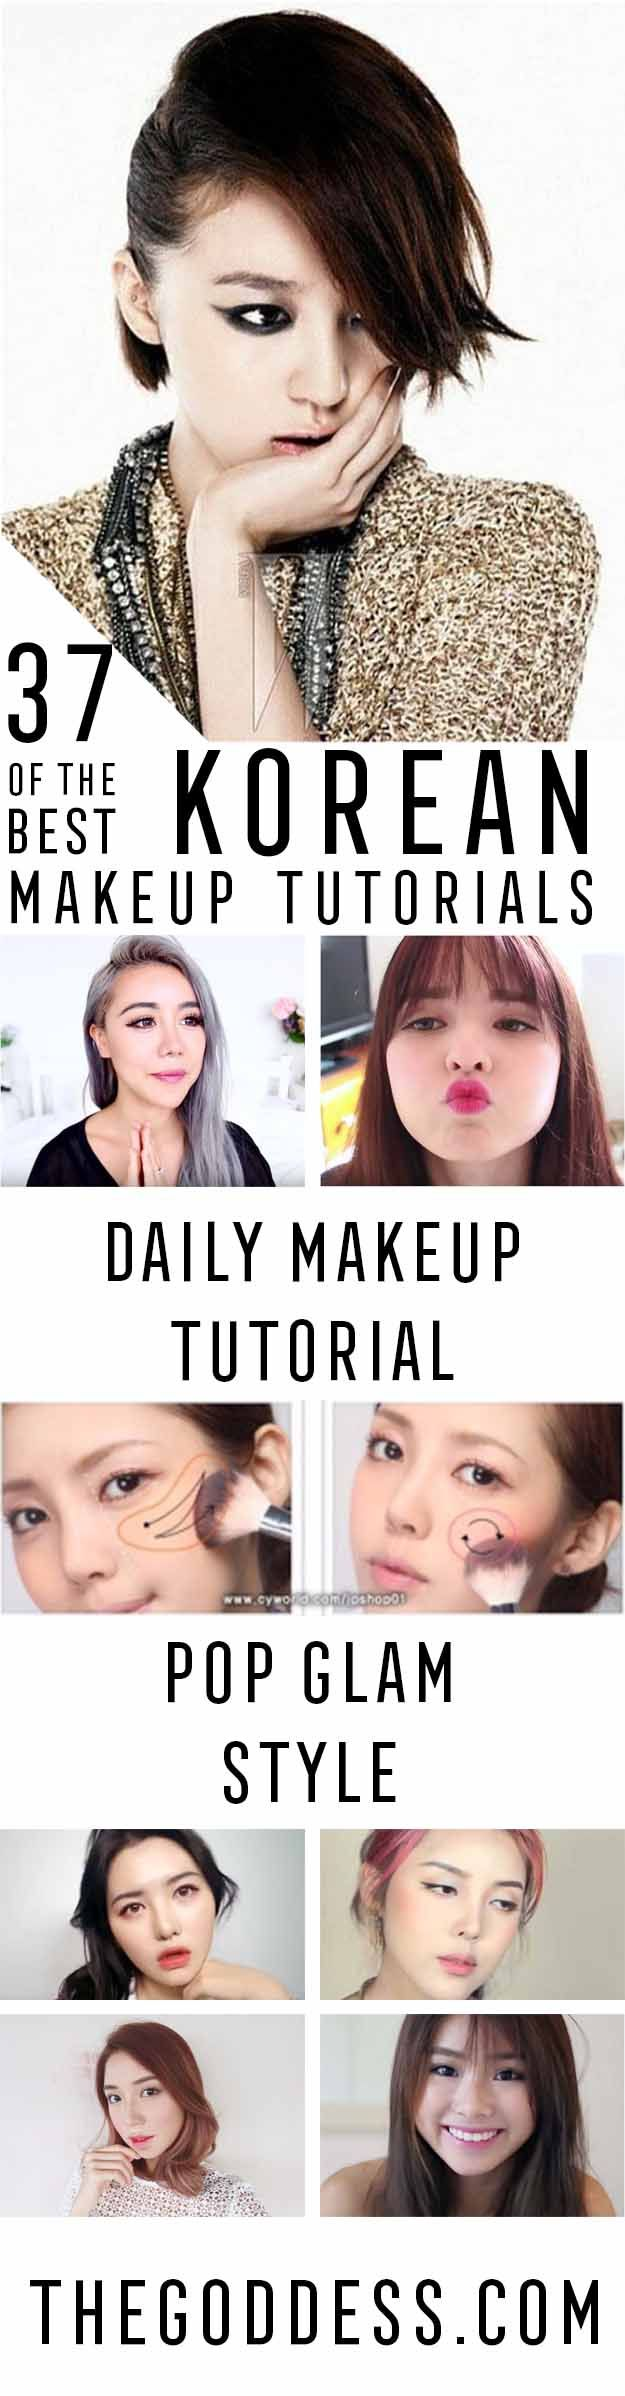 Best Korean Makeup Tutorials - Natural Step By Step Tutorials For Ulzzang, Pony, Puppy Eyes, Eyeshadows, Kpop, Eyebrows, Eyeliner and even Hairstyles.  Super Cute DIY And Easy Contouring, Foundation, and Simple Dewy Skin Help For Beginners - http://thegoddess.com/best-korean-makeup-tutorials